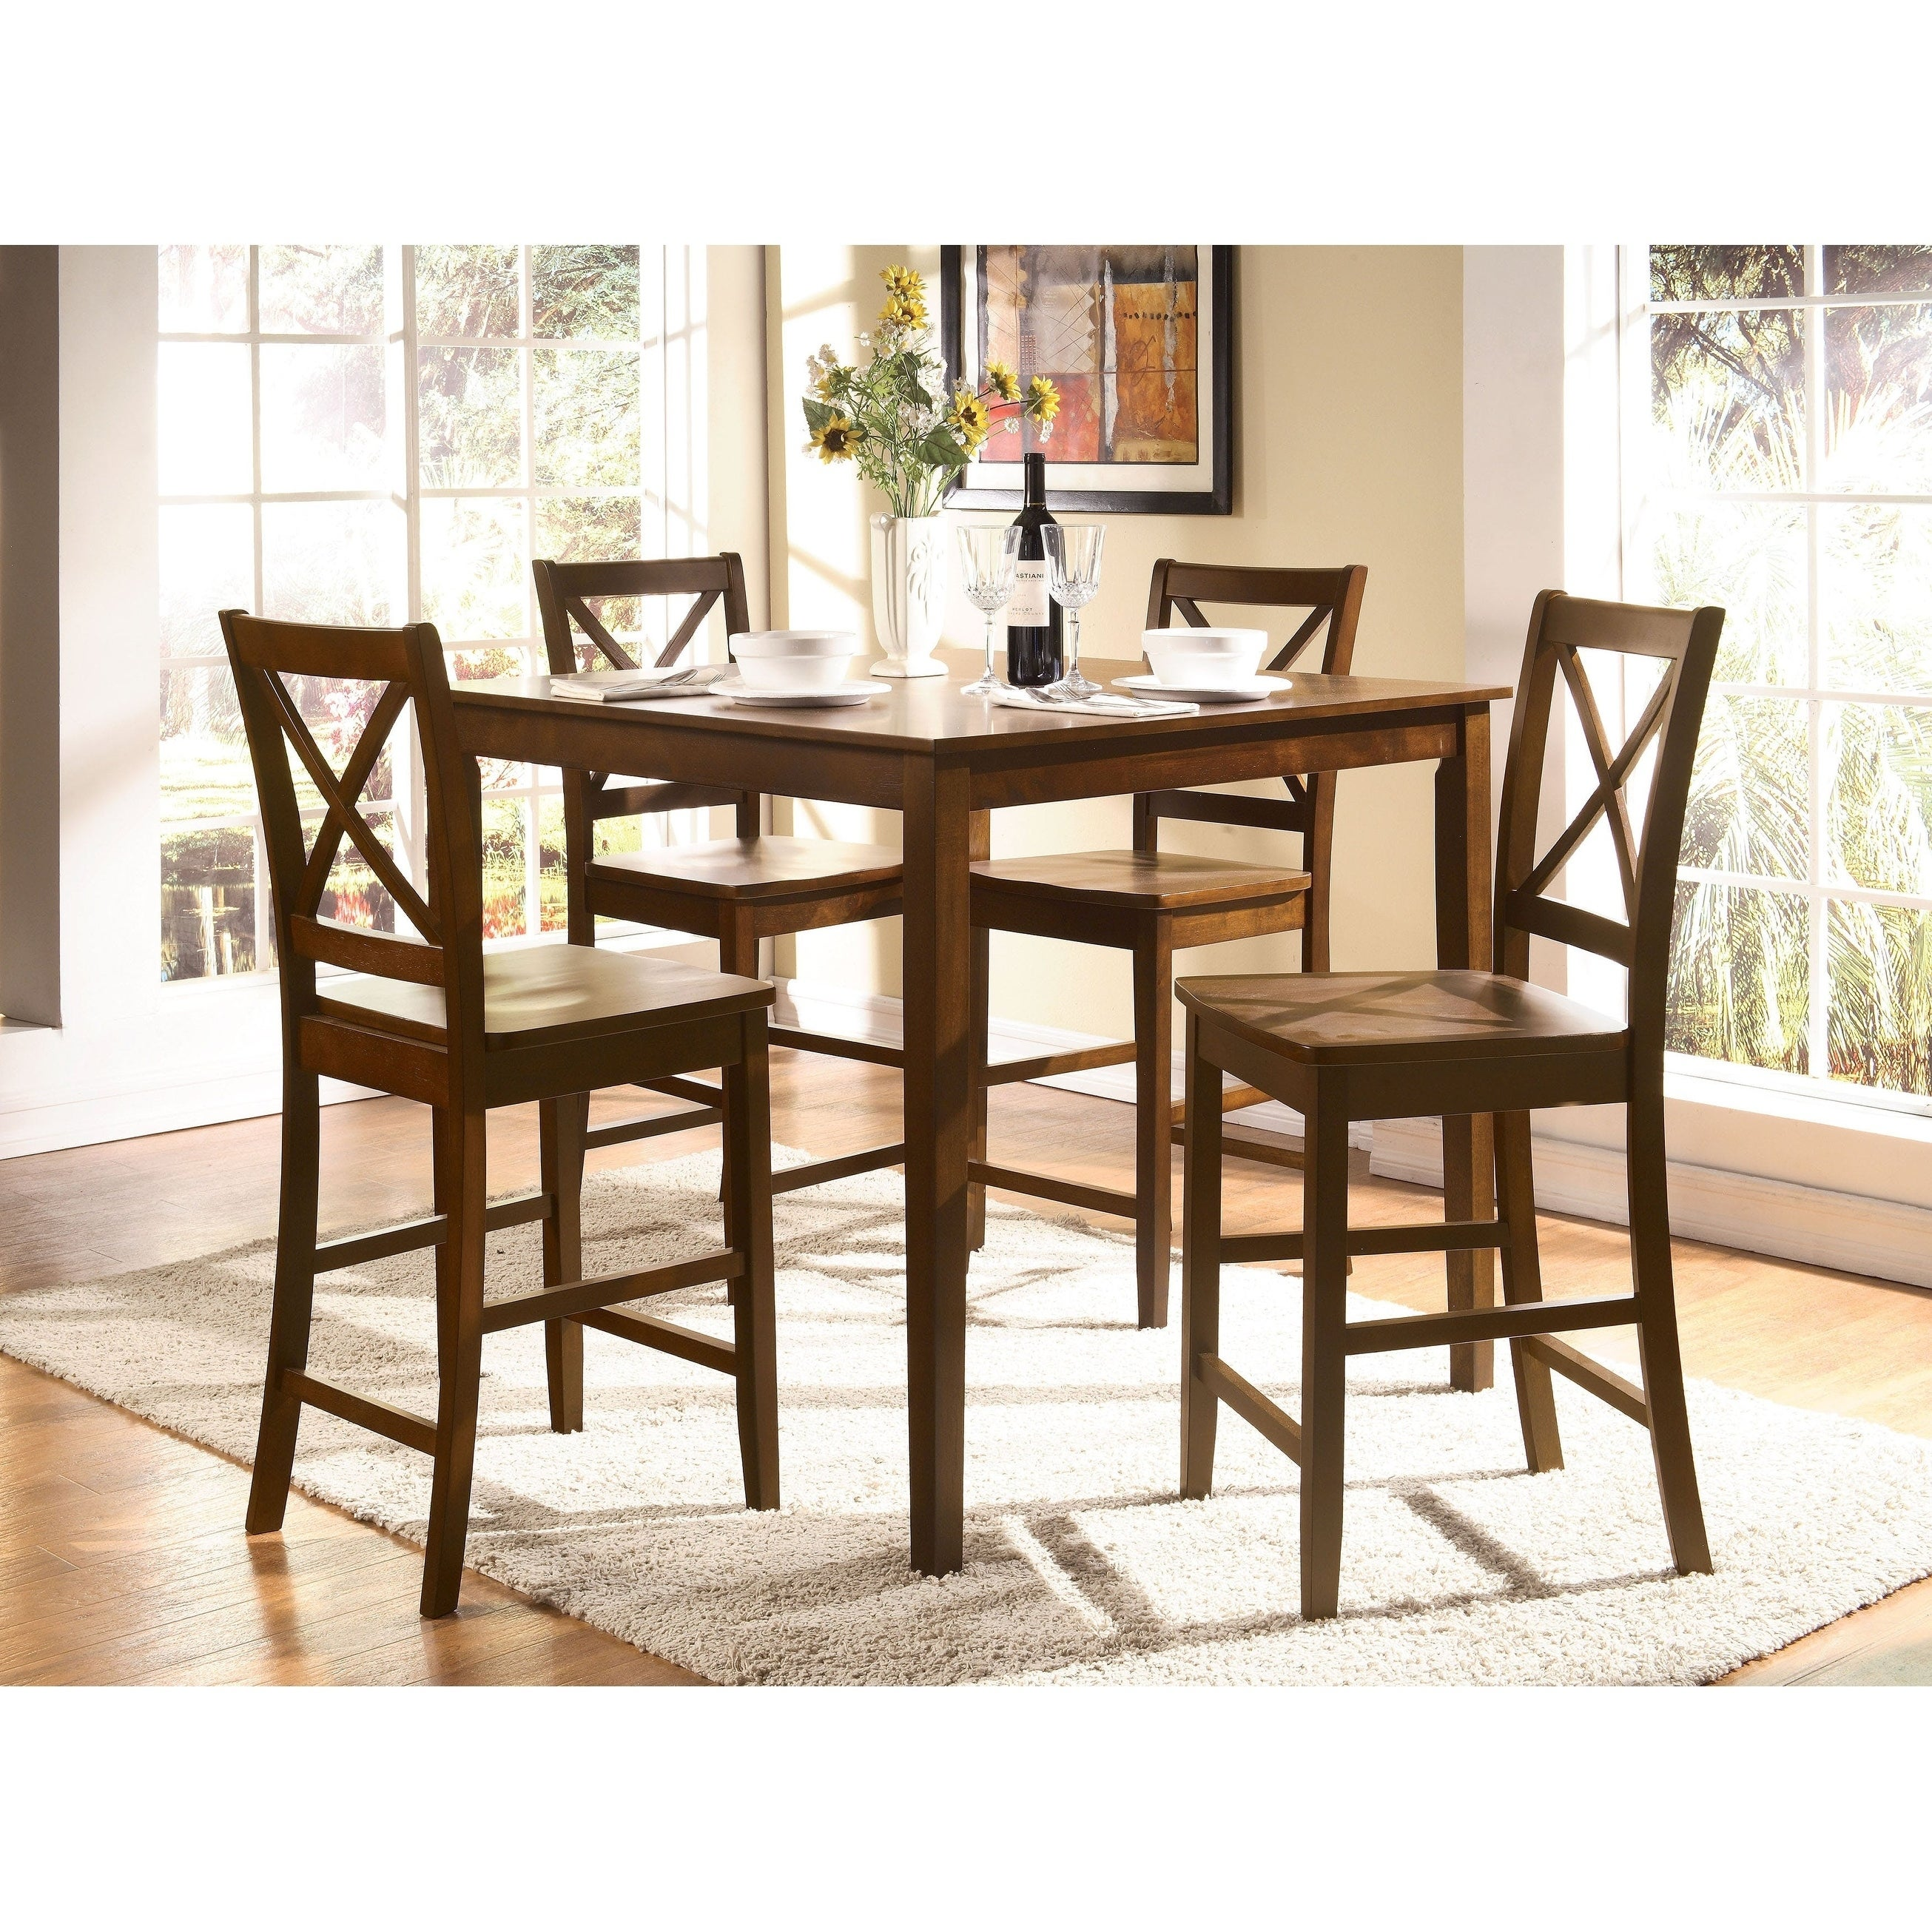 5 Piece Wooden Counter Height Dining Set Light Brown Overstock 22882185